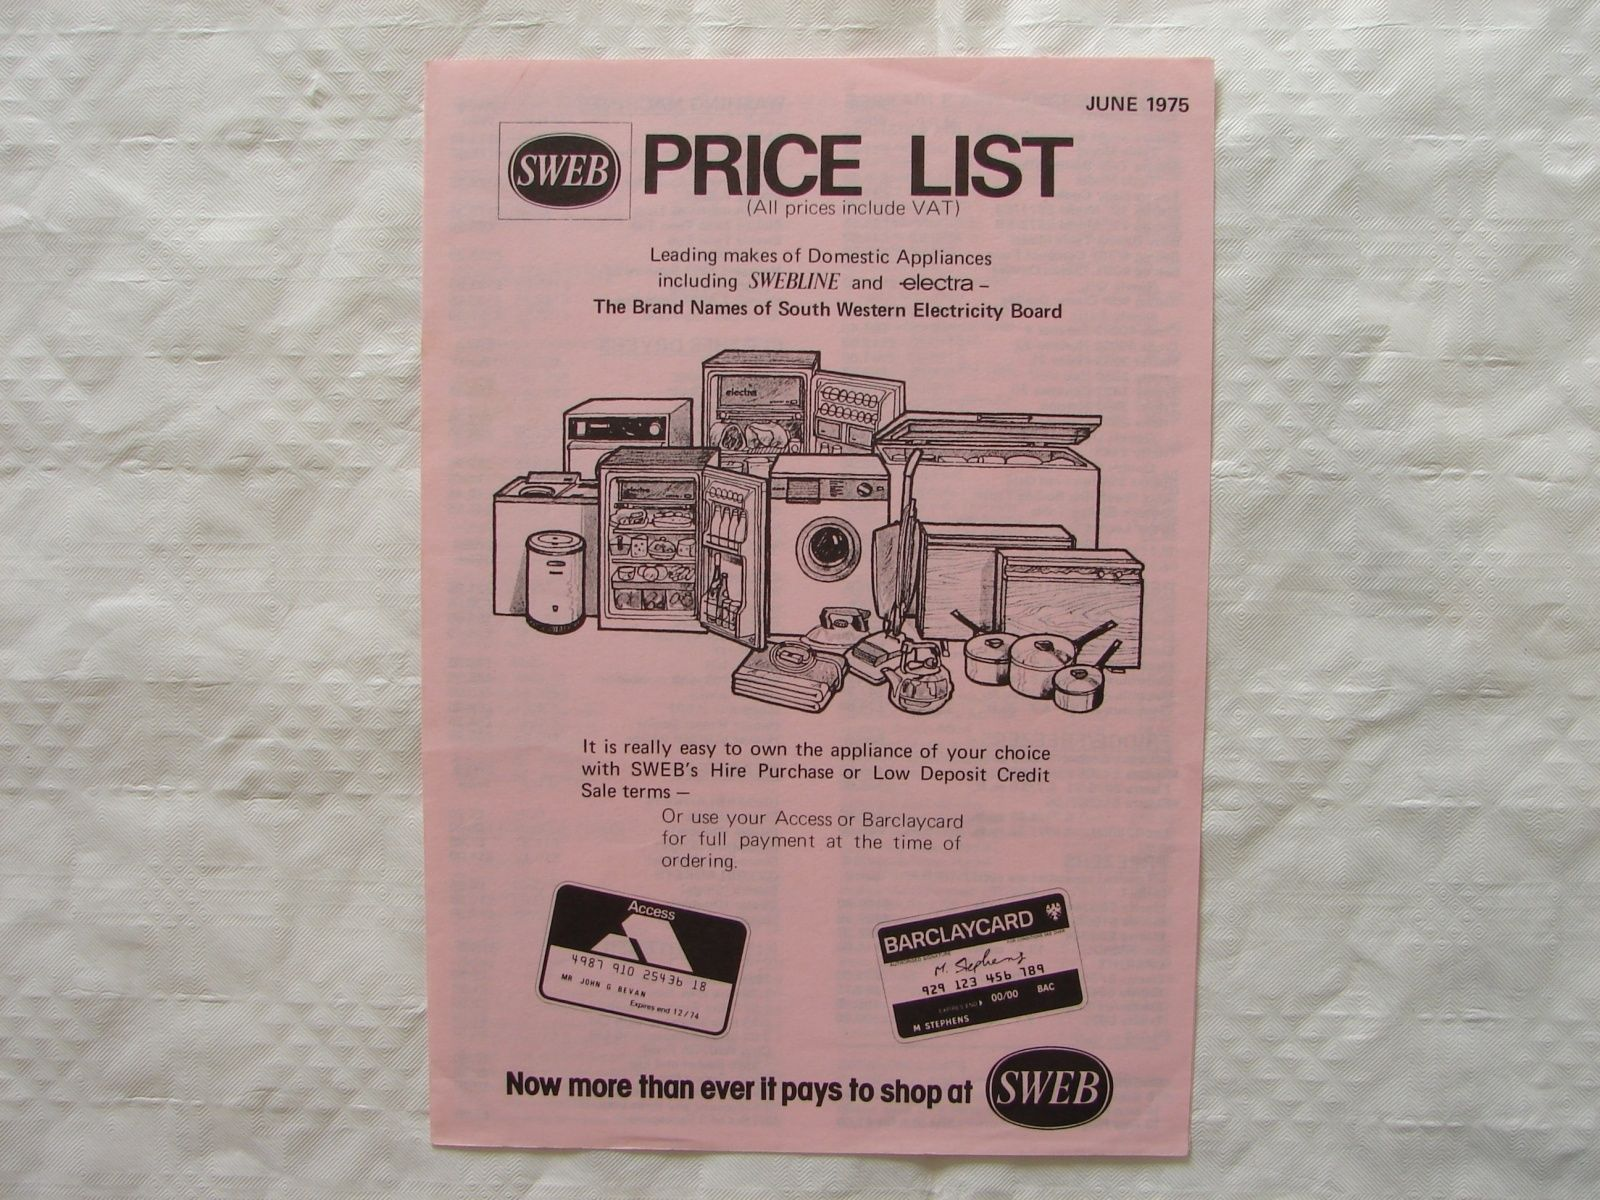 SWEB Price list 1975  Cookers Fridges Freezers Washing Machines Vacuums etc https://t.co/SVu1X5LaiB https://t.co/9QgoP5xhcZ